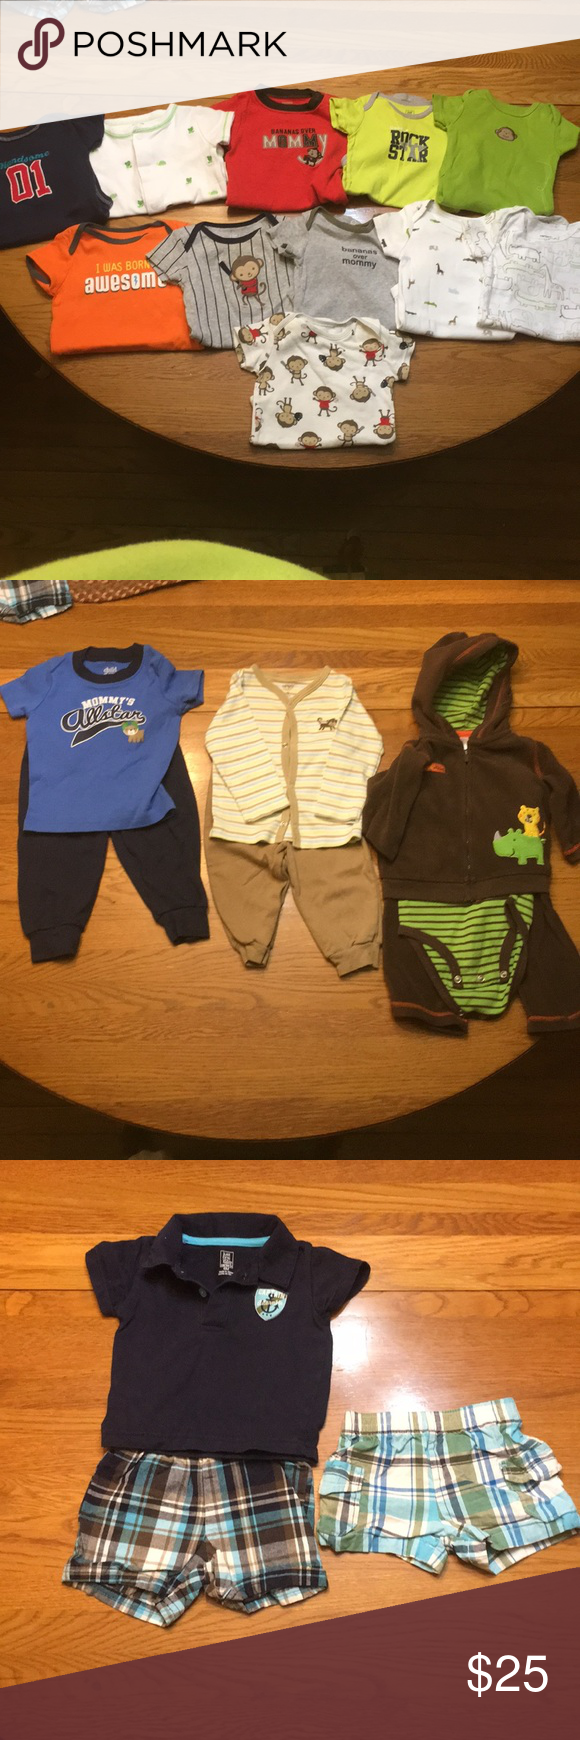 Baby clothes Bundle pack! 6 months baby boy onesies (11 ...